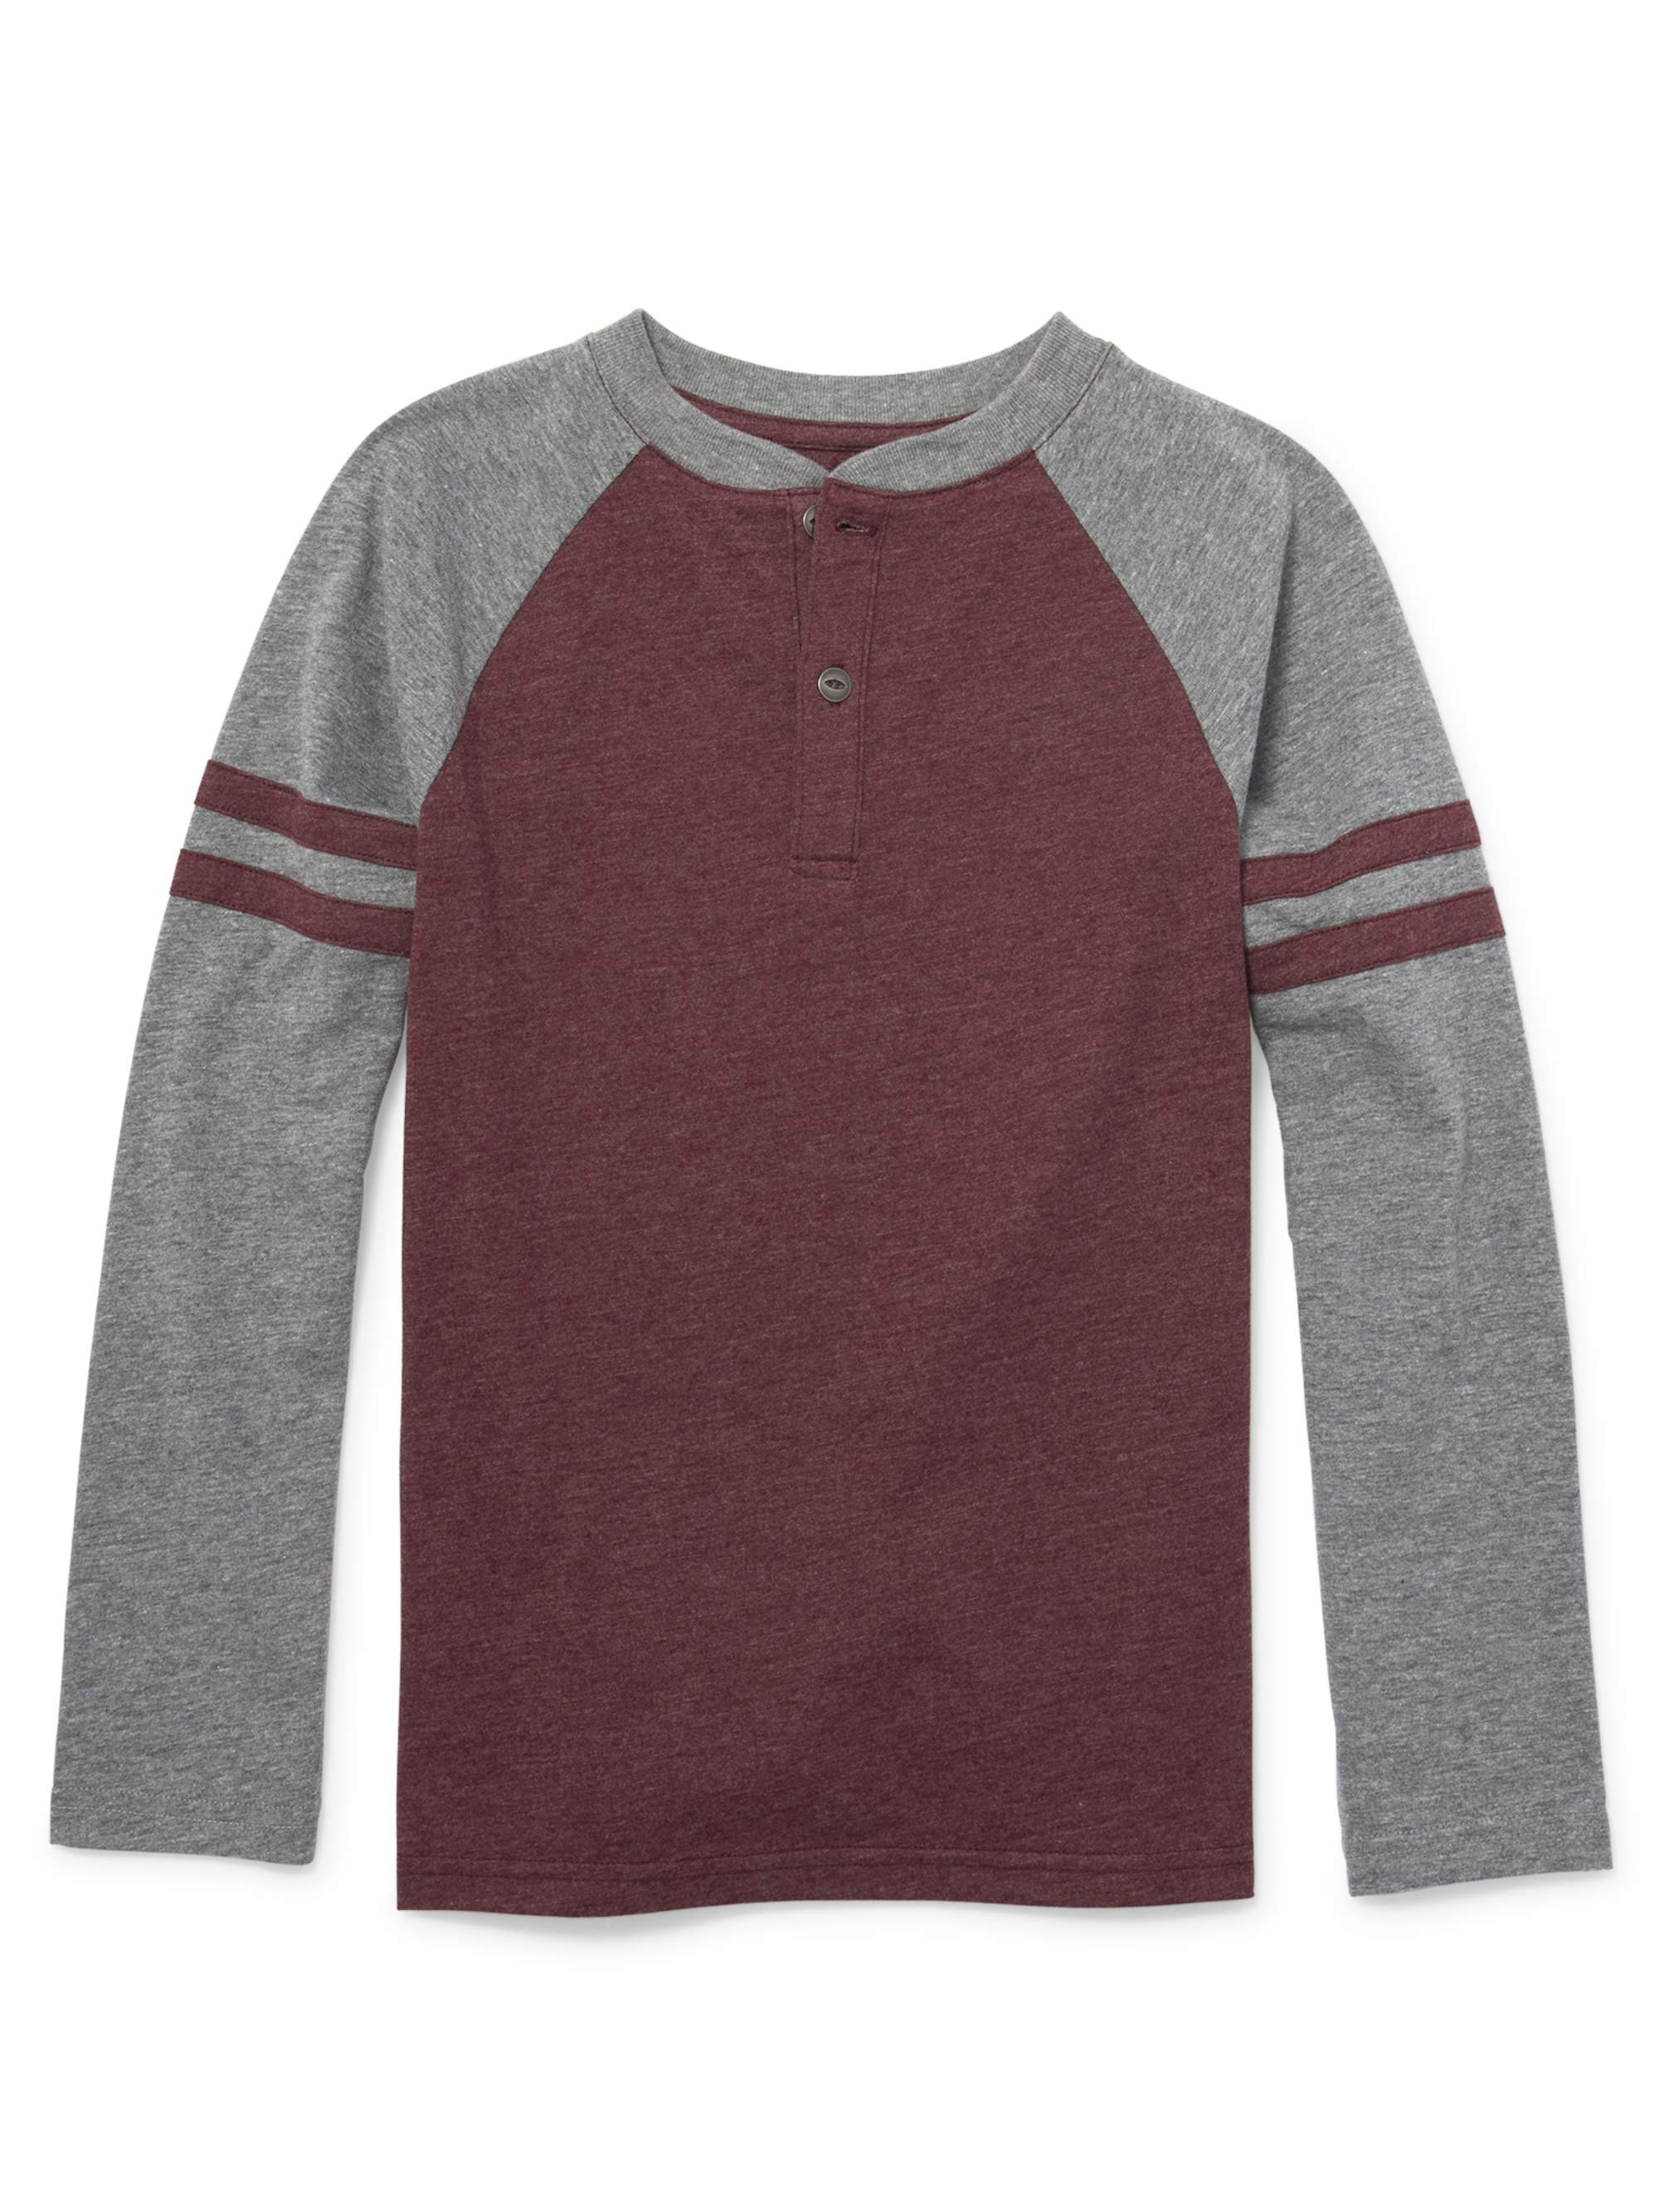 The Children's Place Long Sleeve Raglan Henley Tee Shirt (Little Boy & Big Boy)